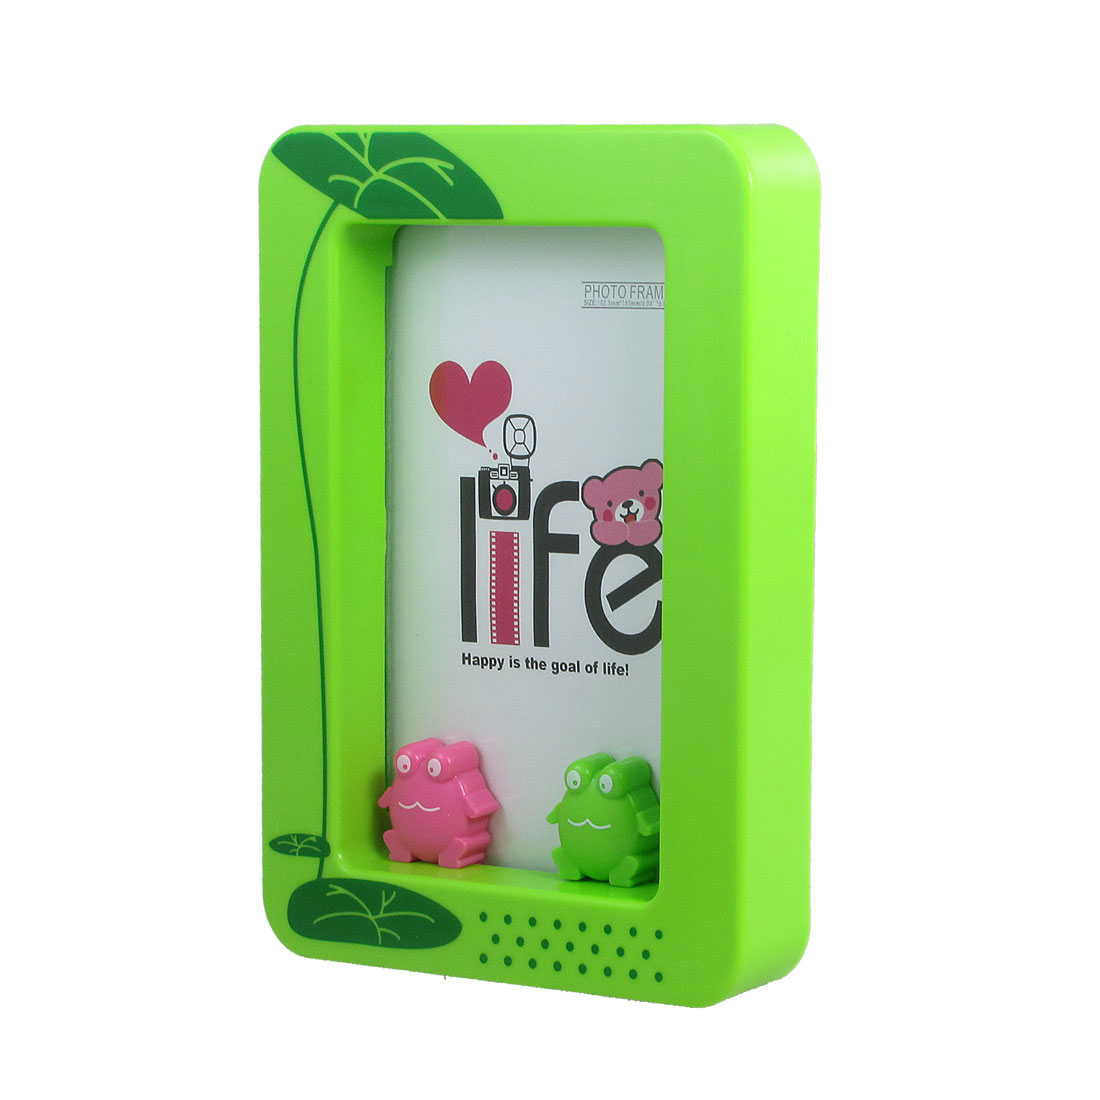 Clear Cover Lotus Leaf Pattern Rectangular Plastic Photo Frame Light Green